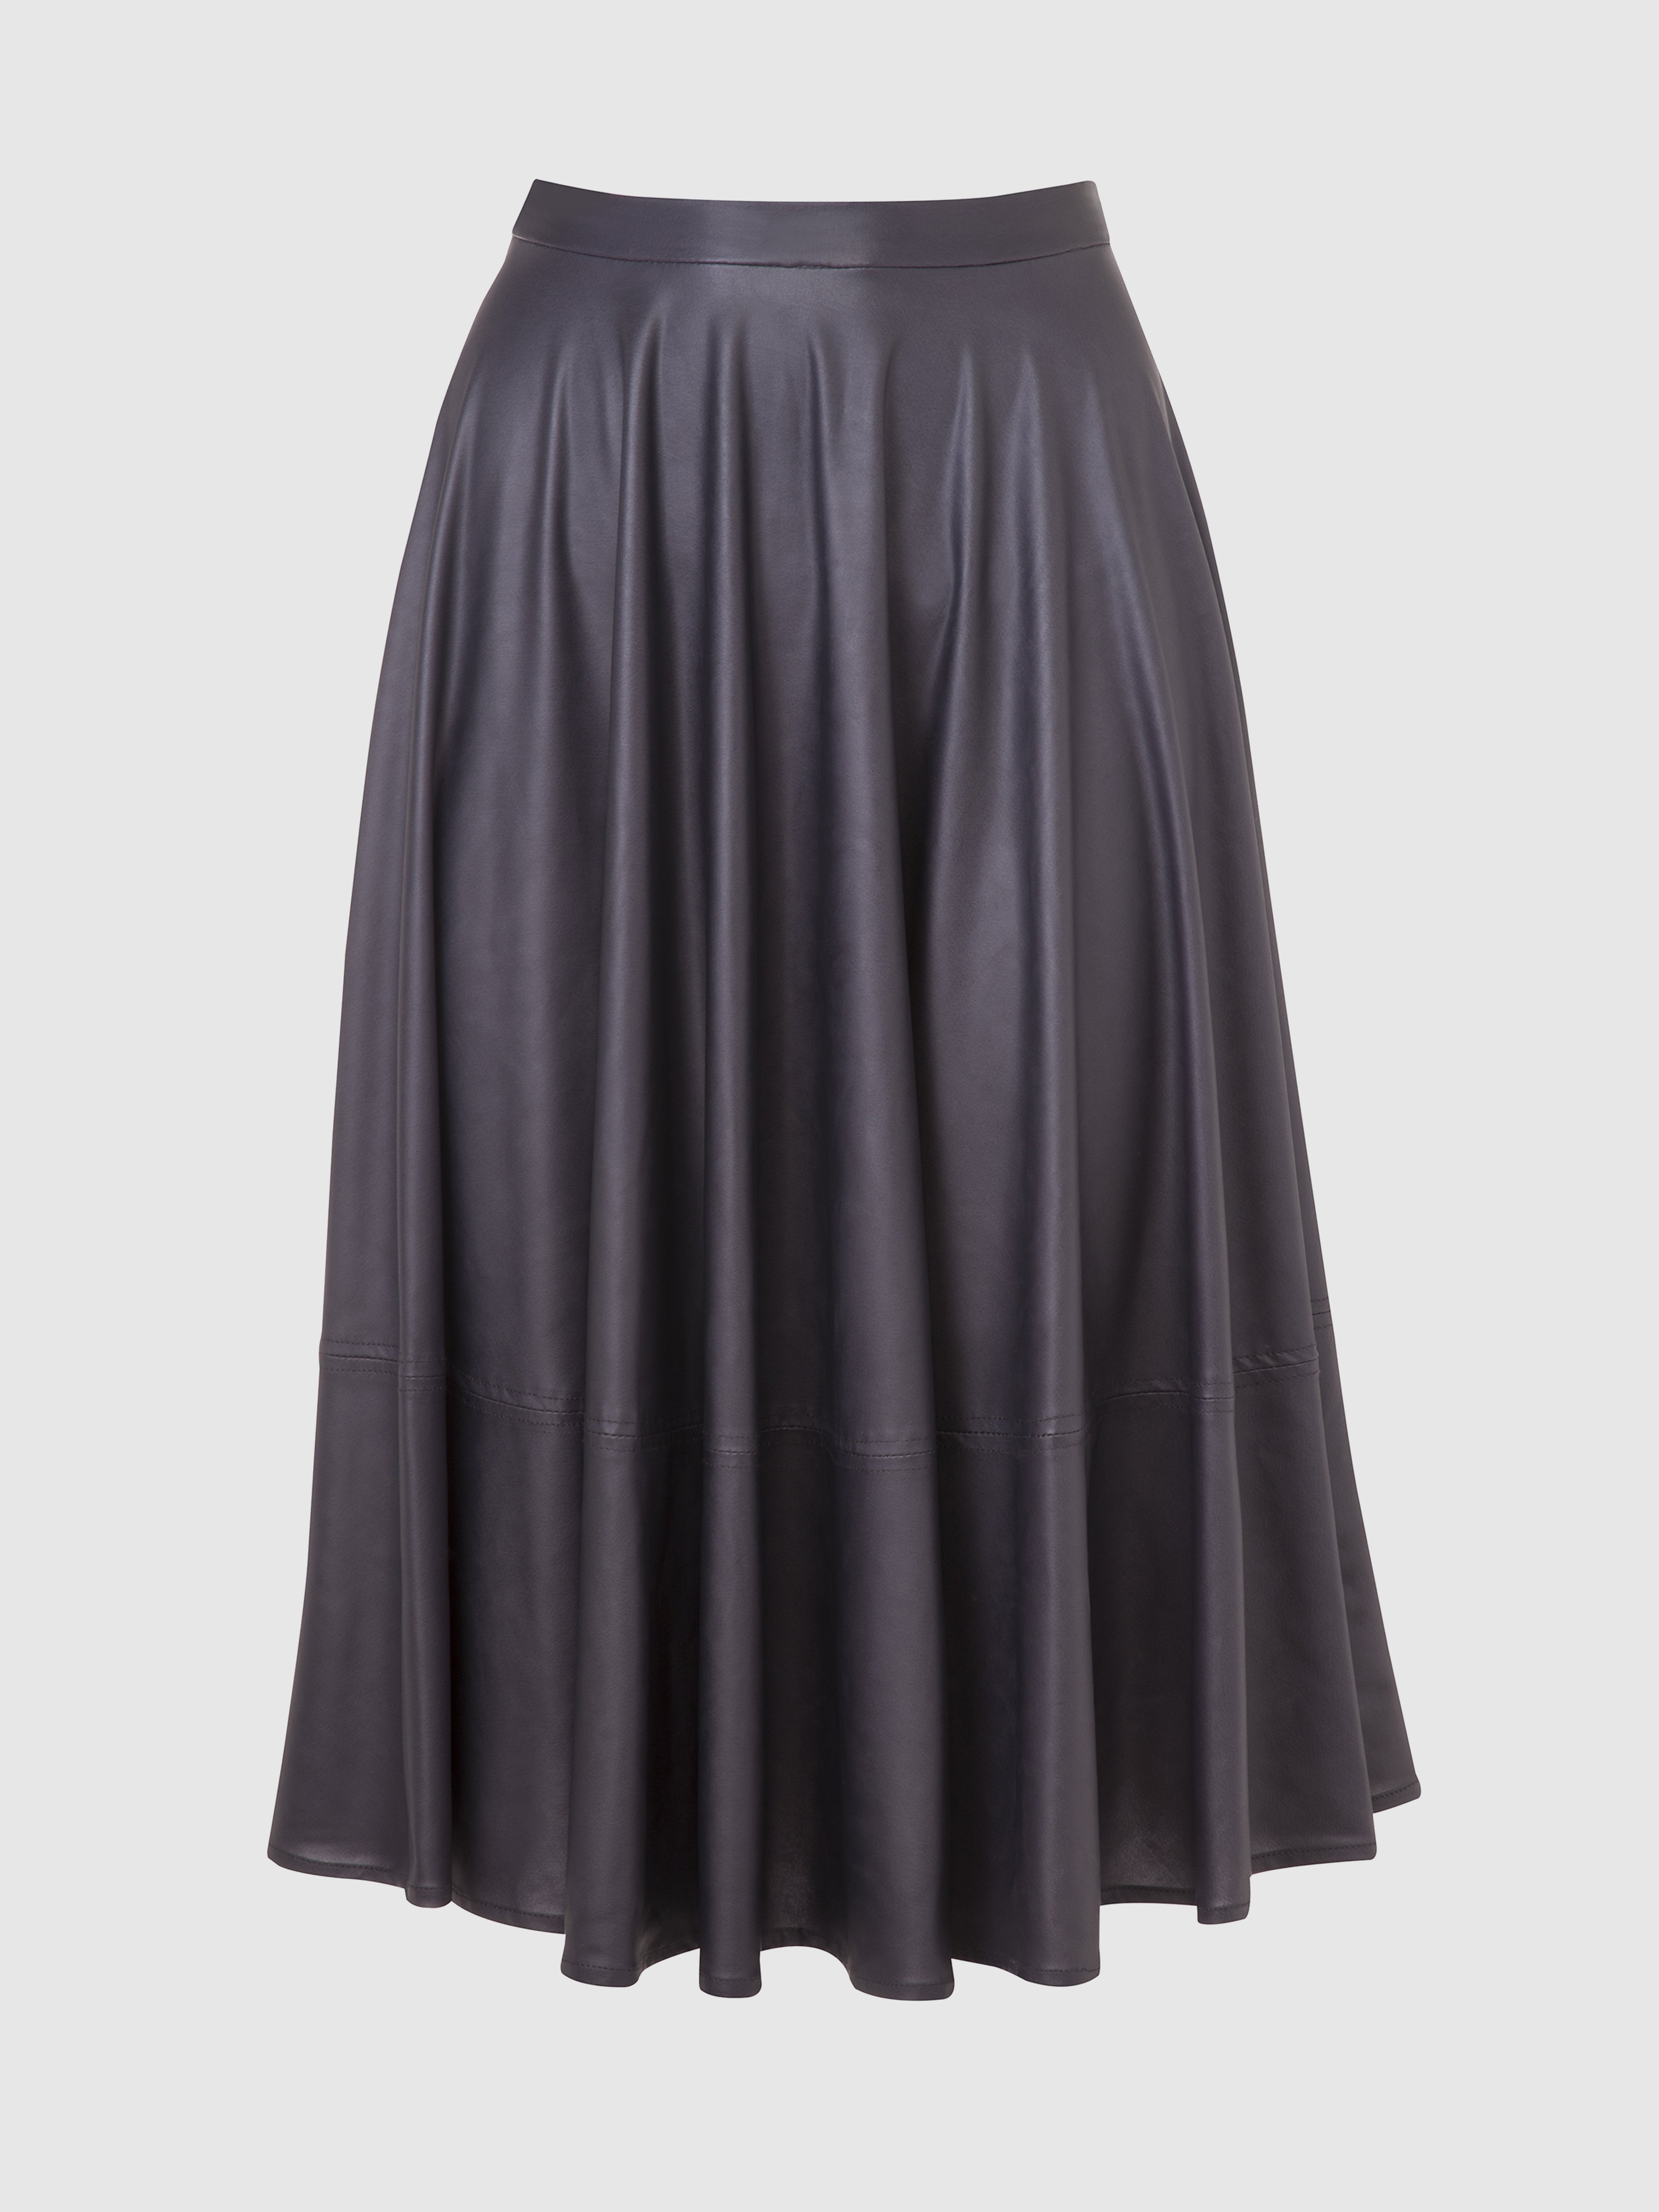 Purplish gray knee length PU leather flared skirt from the RÉZO women's collection